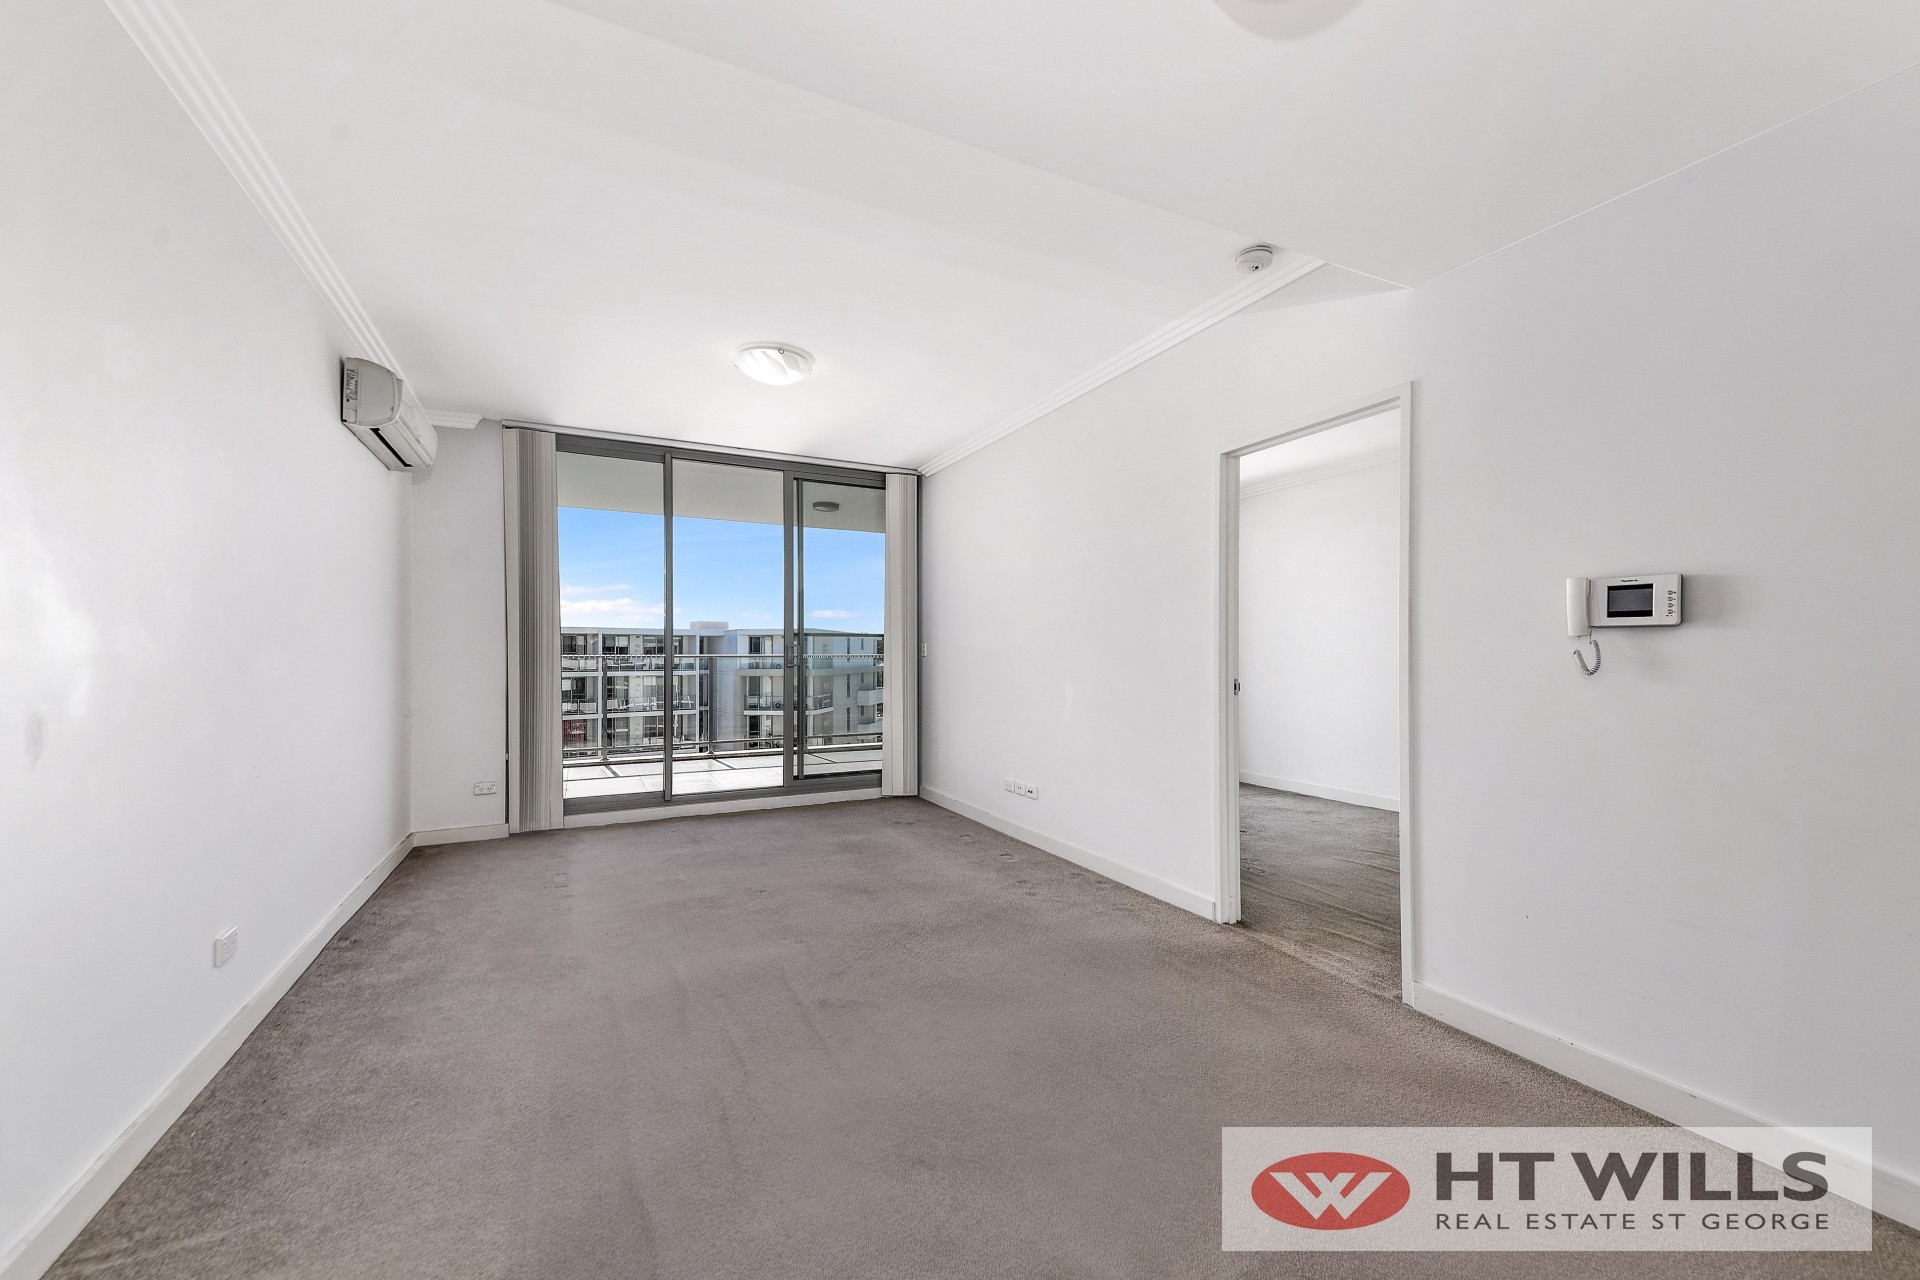 Image: Stylish 2 Bedroom apartment for sale!